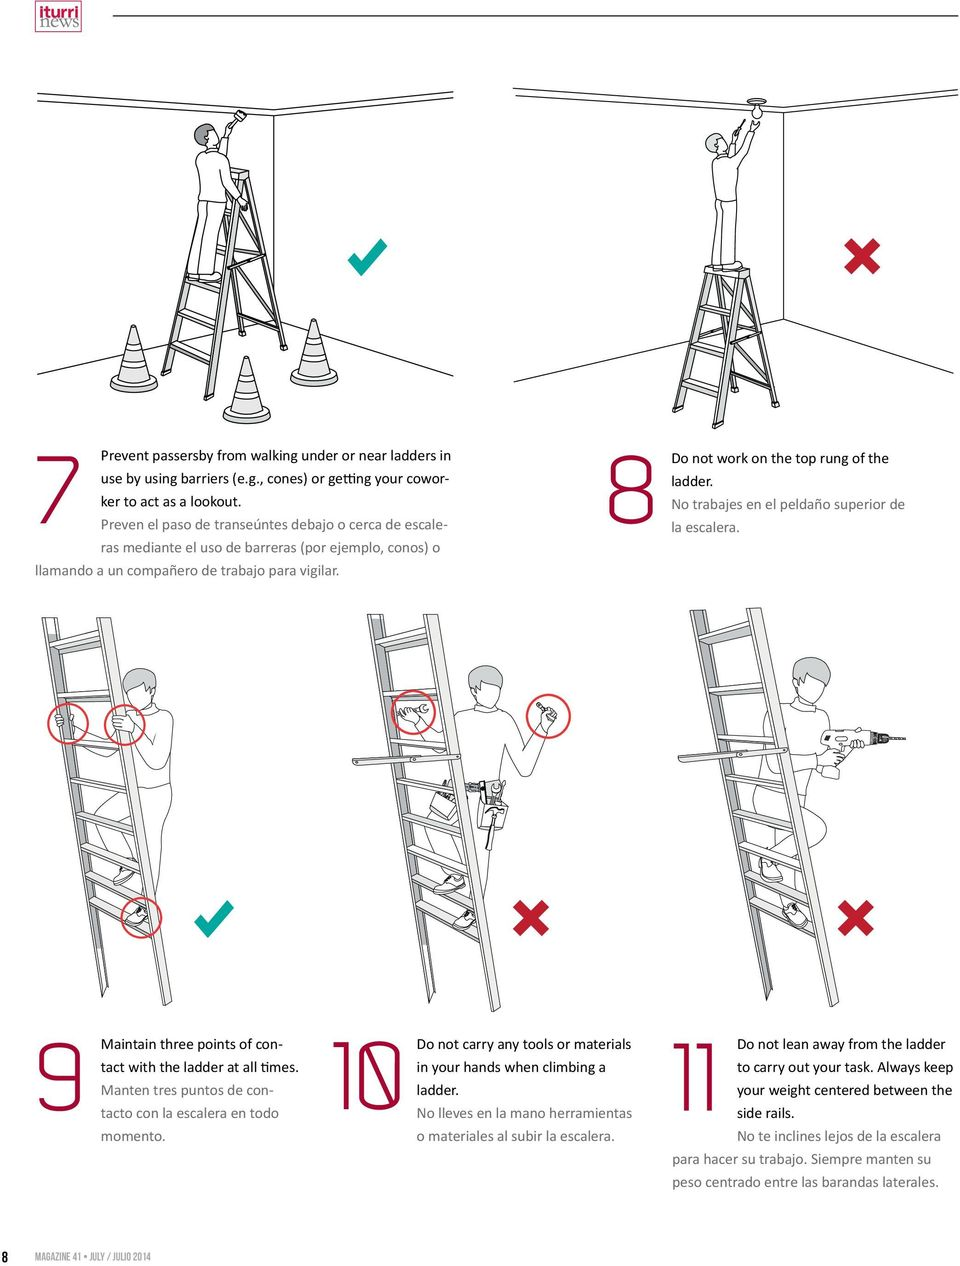 No trabajes en el peldaño superior de la escalera. 9 10 11 Maintain three points of contact with the ladder at all times. Manten tres puntos de contacto con la escalera en todo momento.